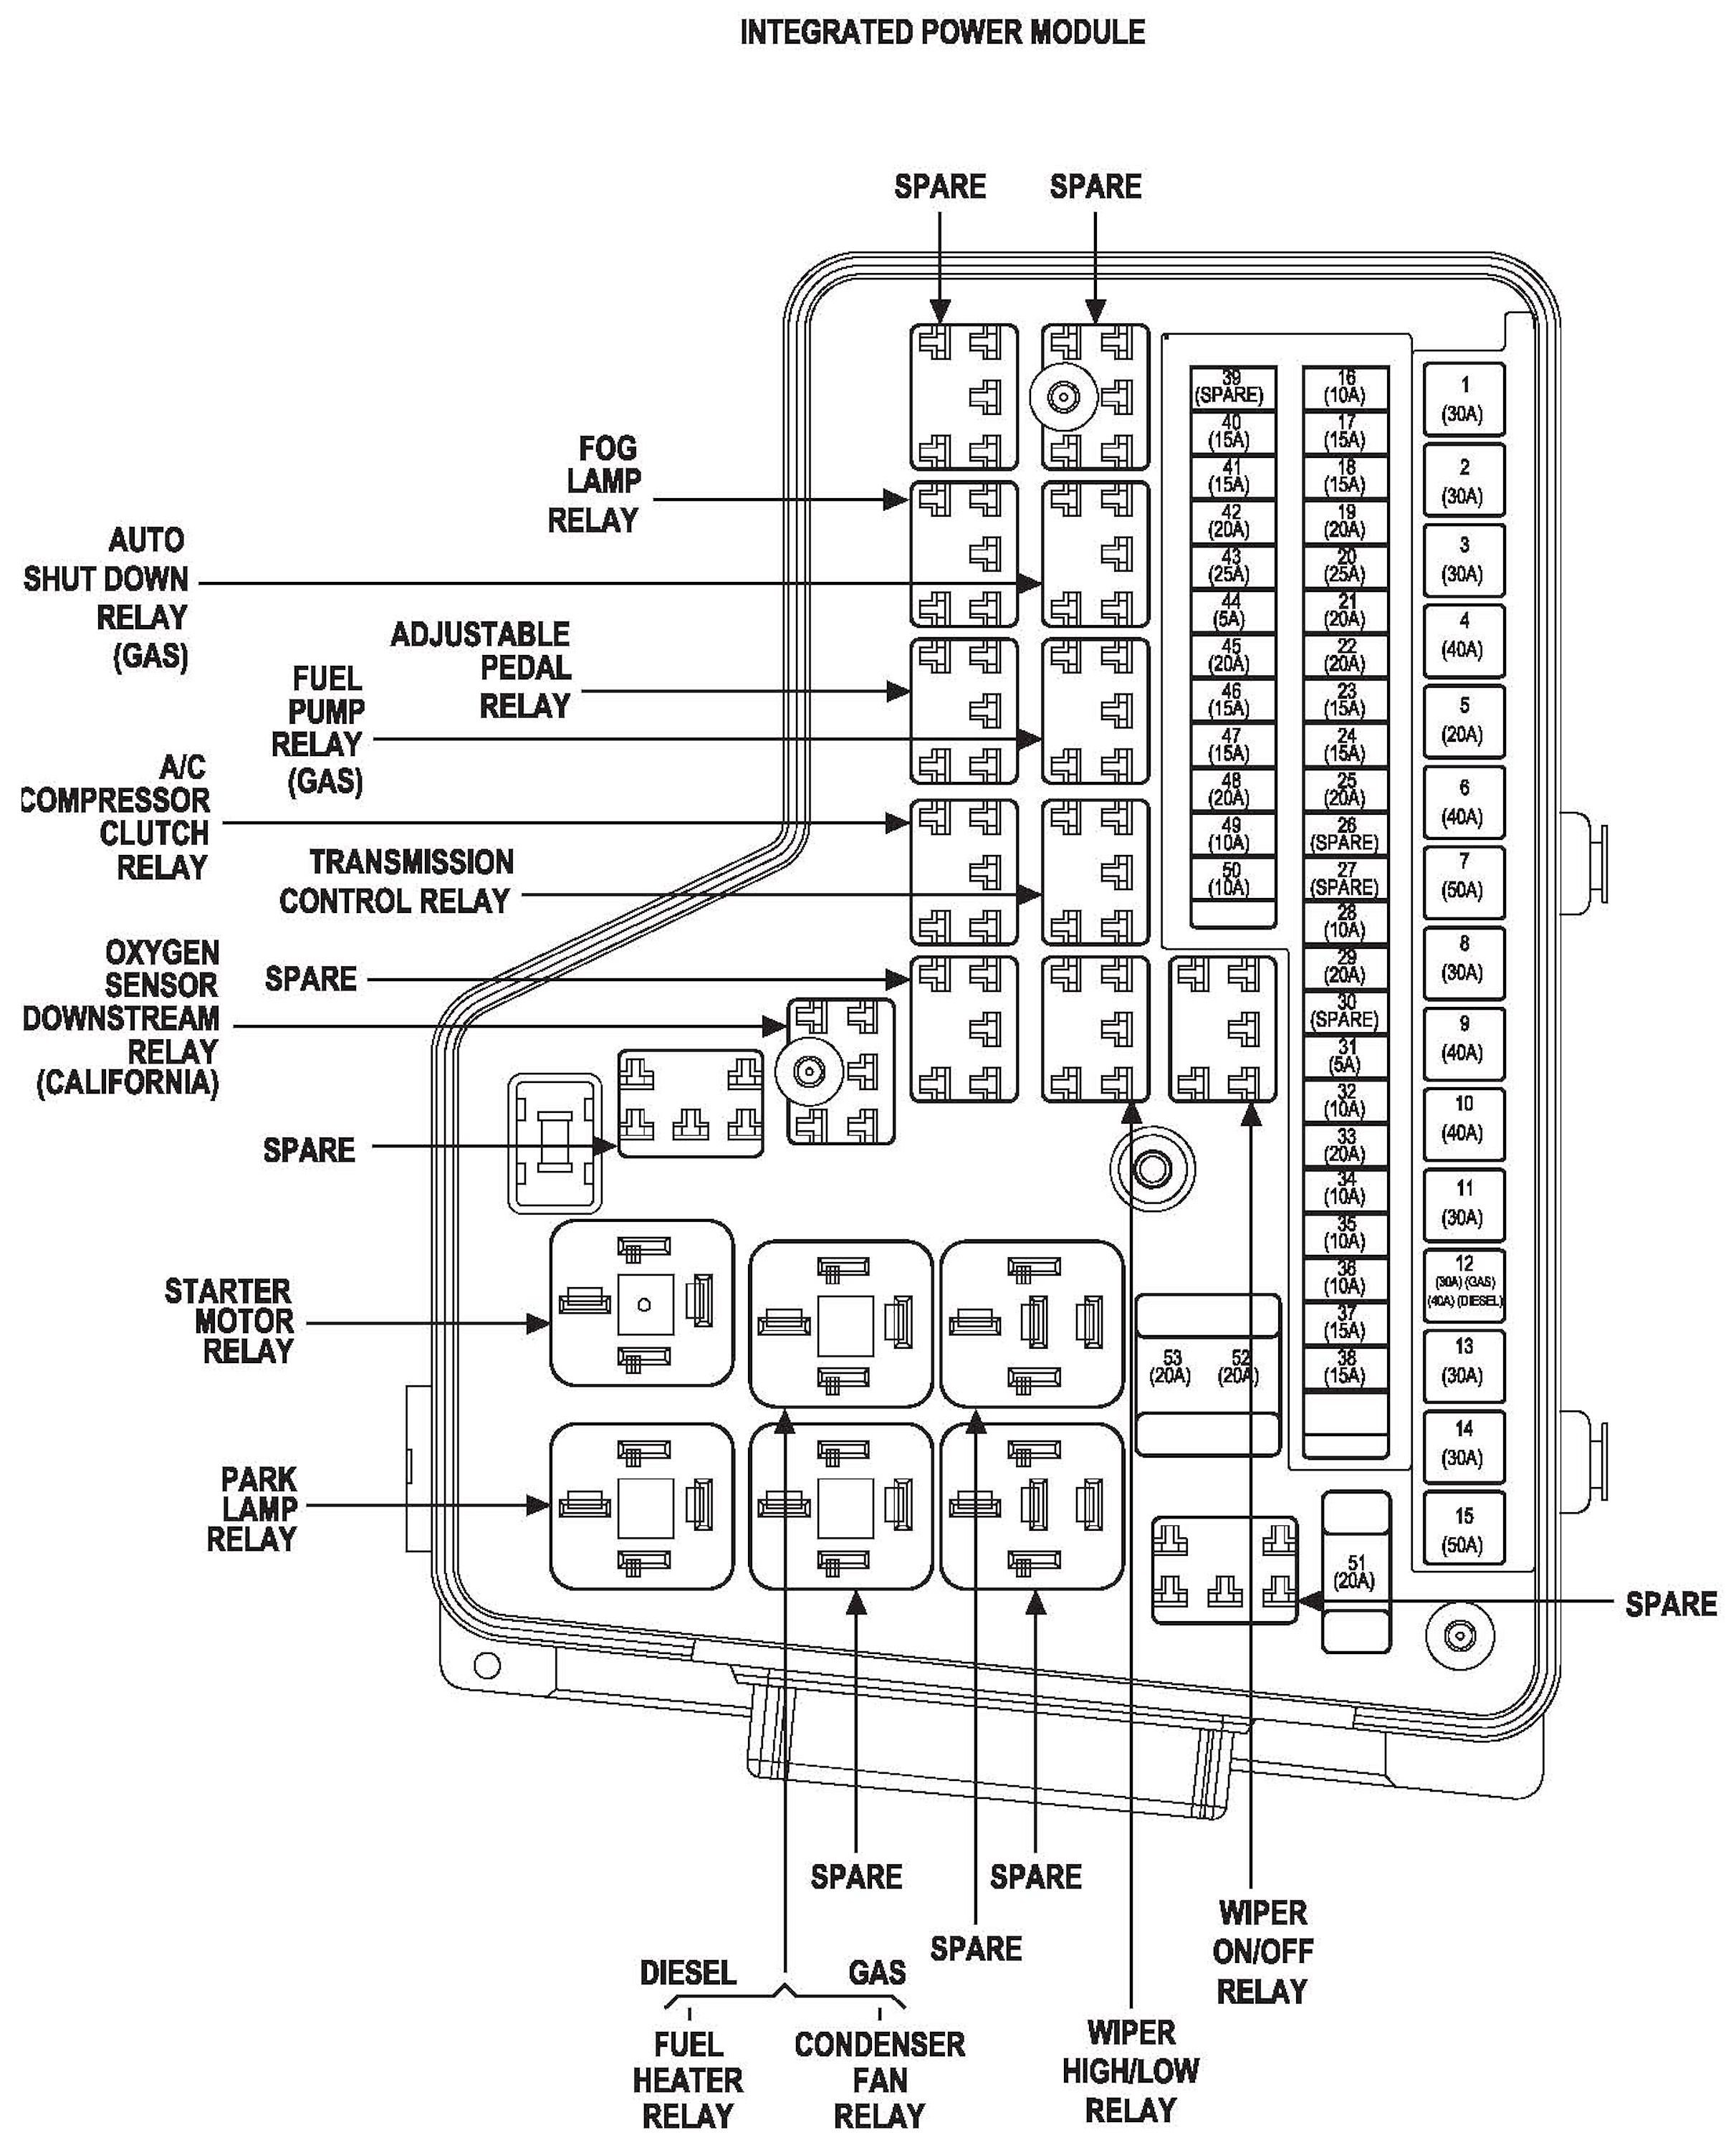 2005 Dodge Durango Fuse Box Diagram : dodge, durango, diagram, Dodge, Diagram, Wiring, Export, Fat-bitter, Fat-bitter.congressosifo2018.it